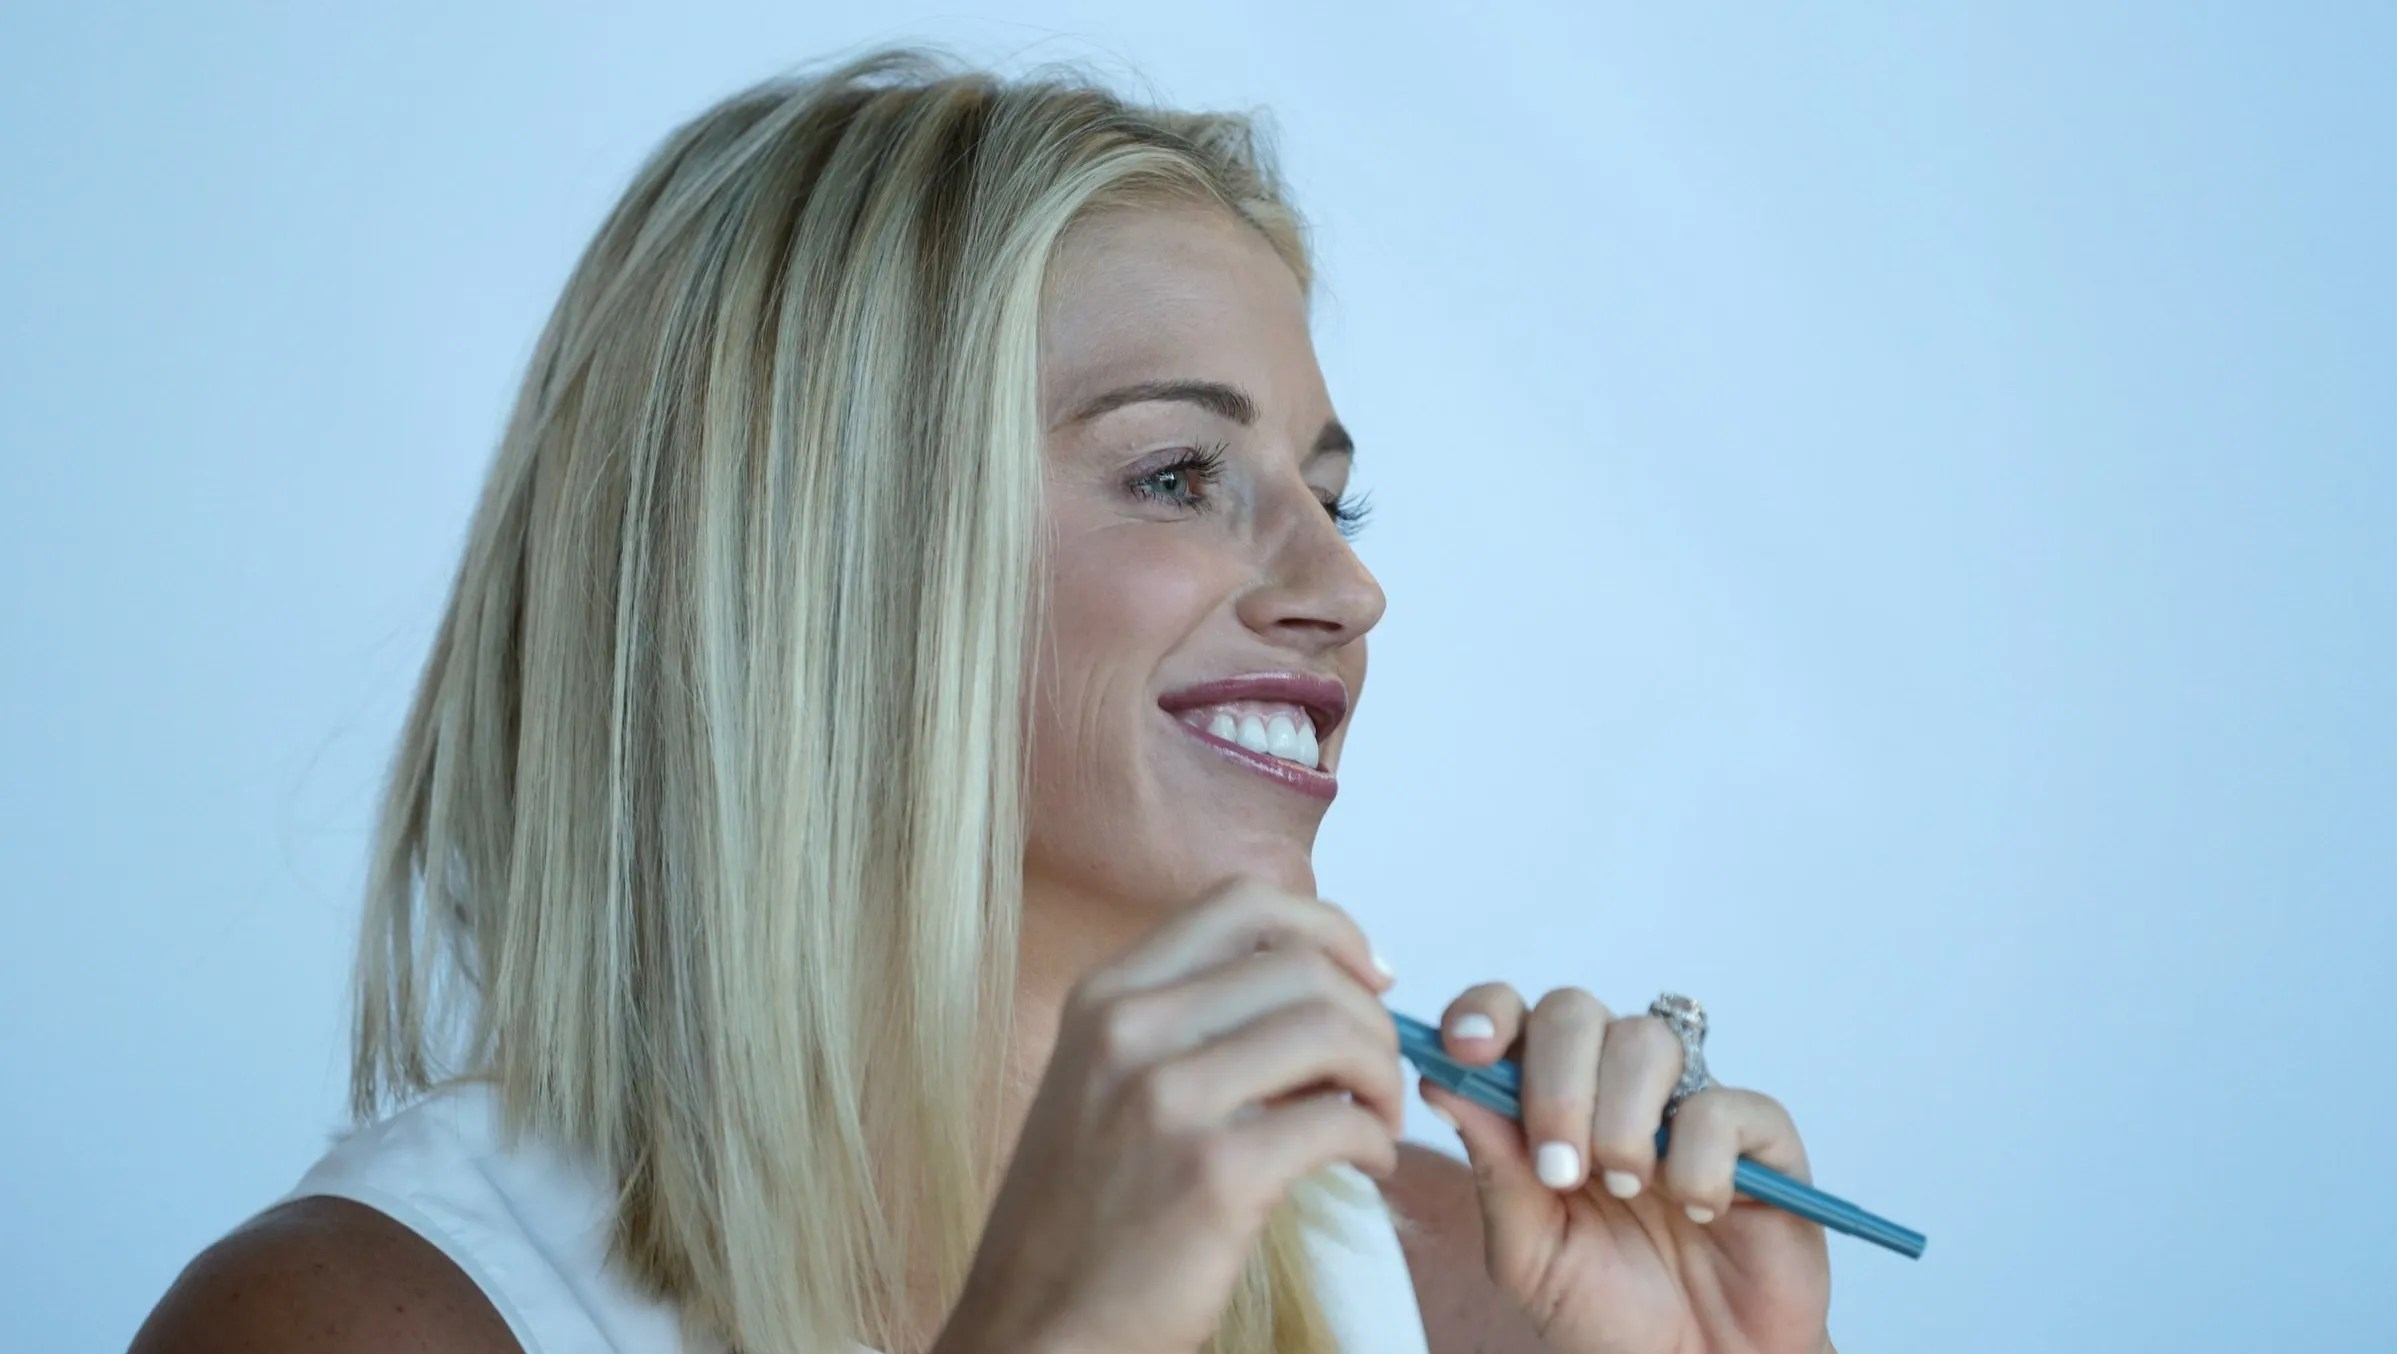 Kelly Stafford details recovery from brain surgery in ESPN essay